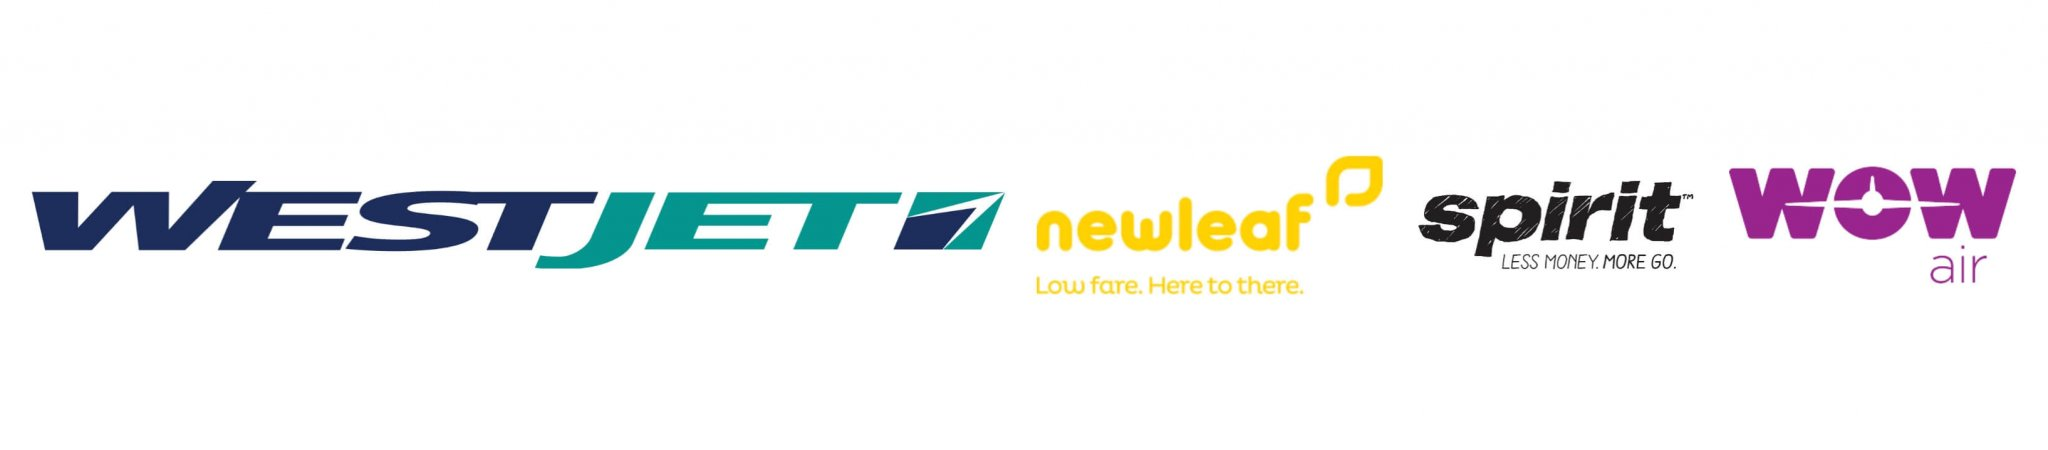 westjet newleaf spirit wow airlines